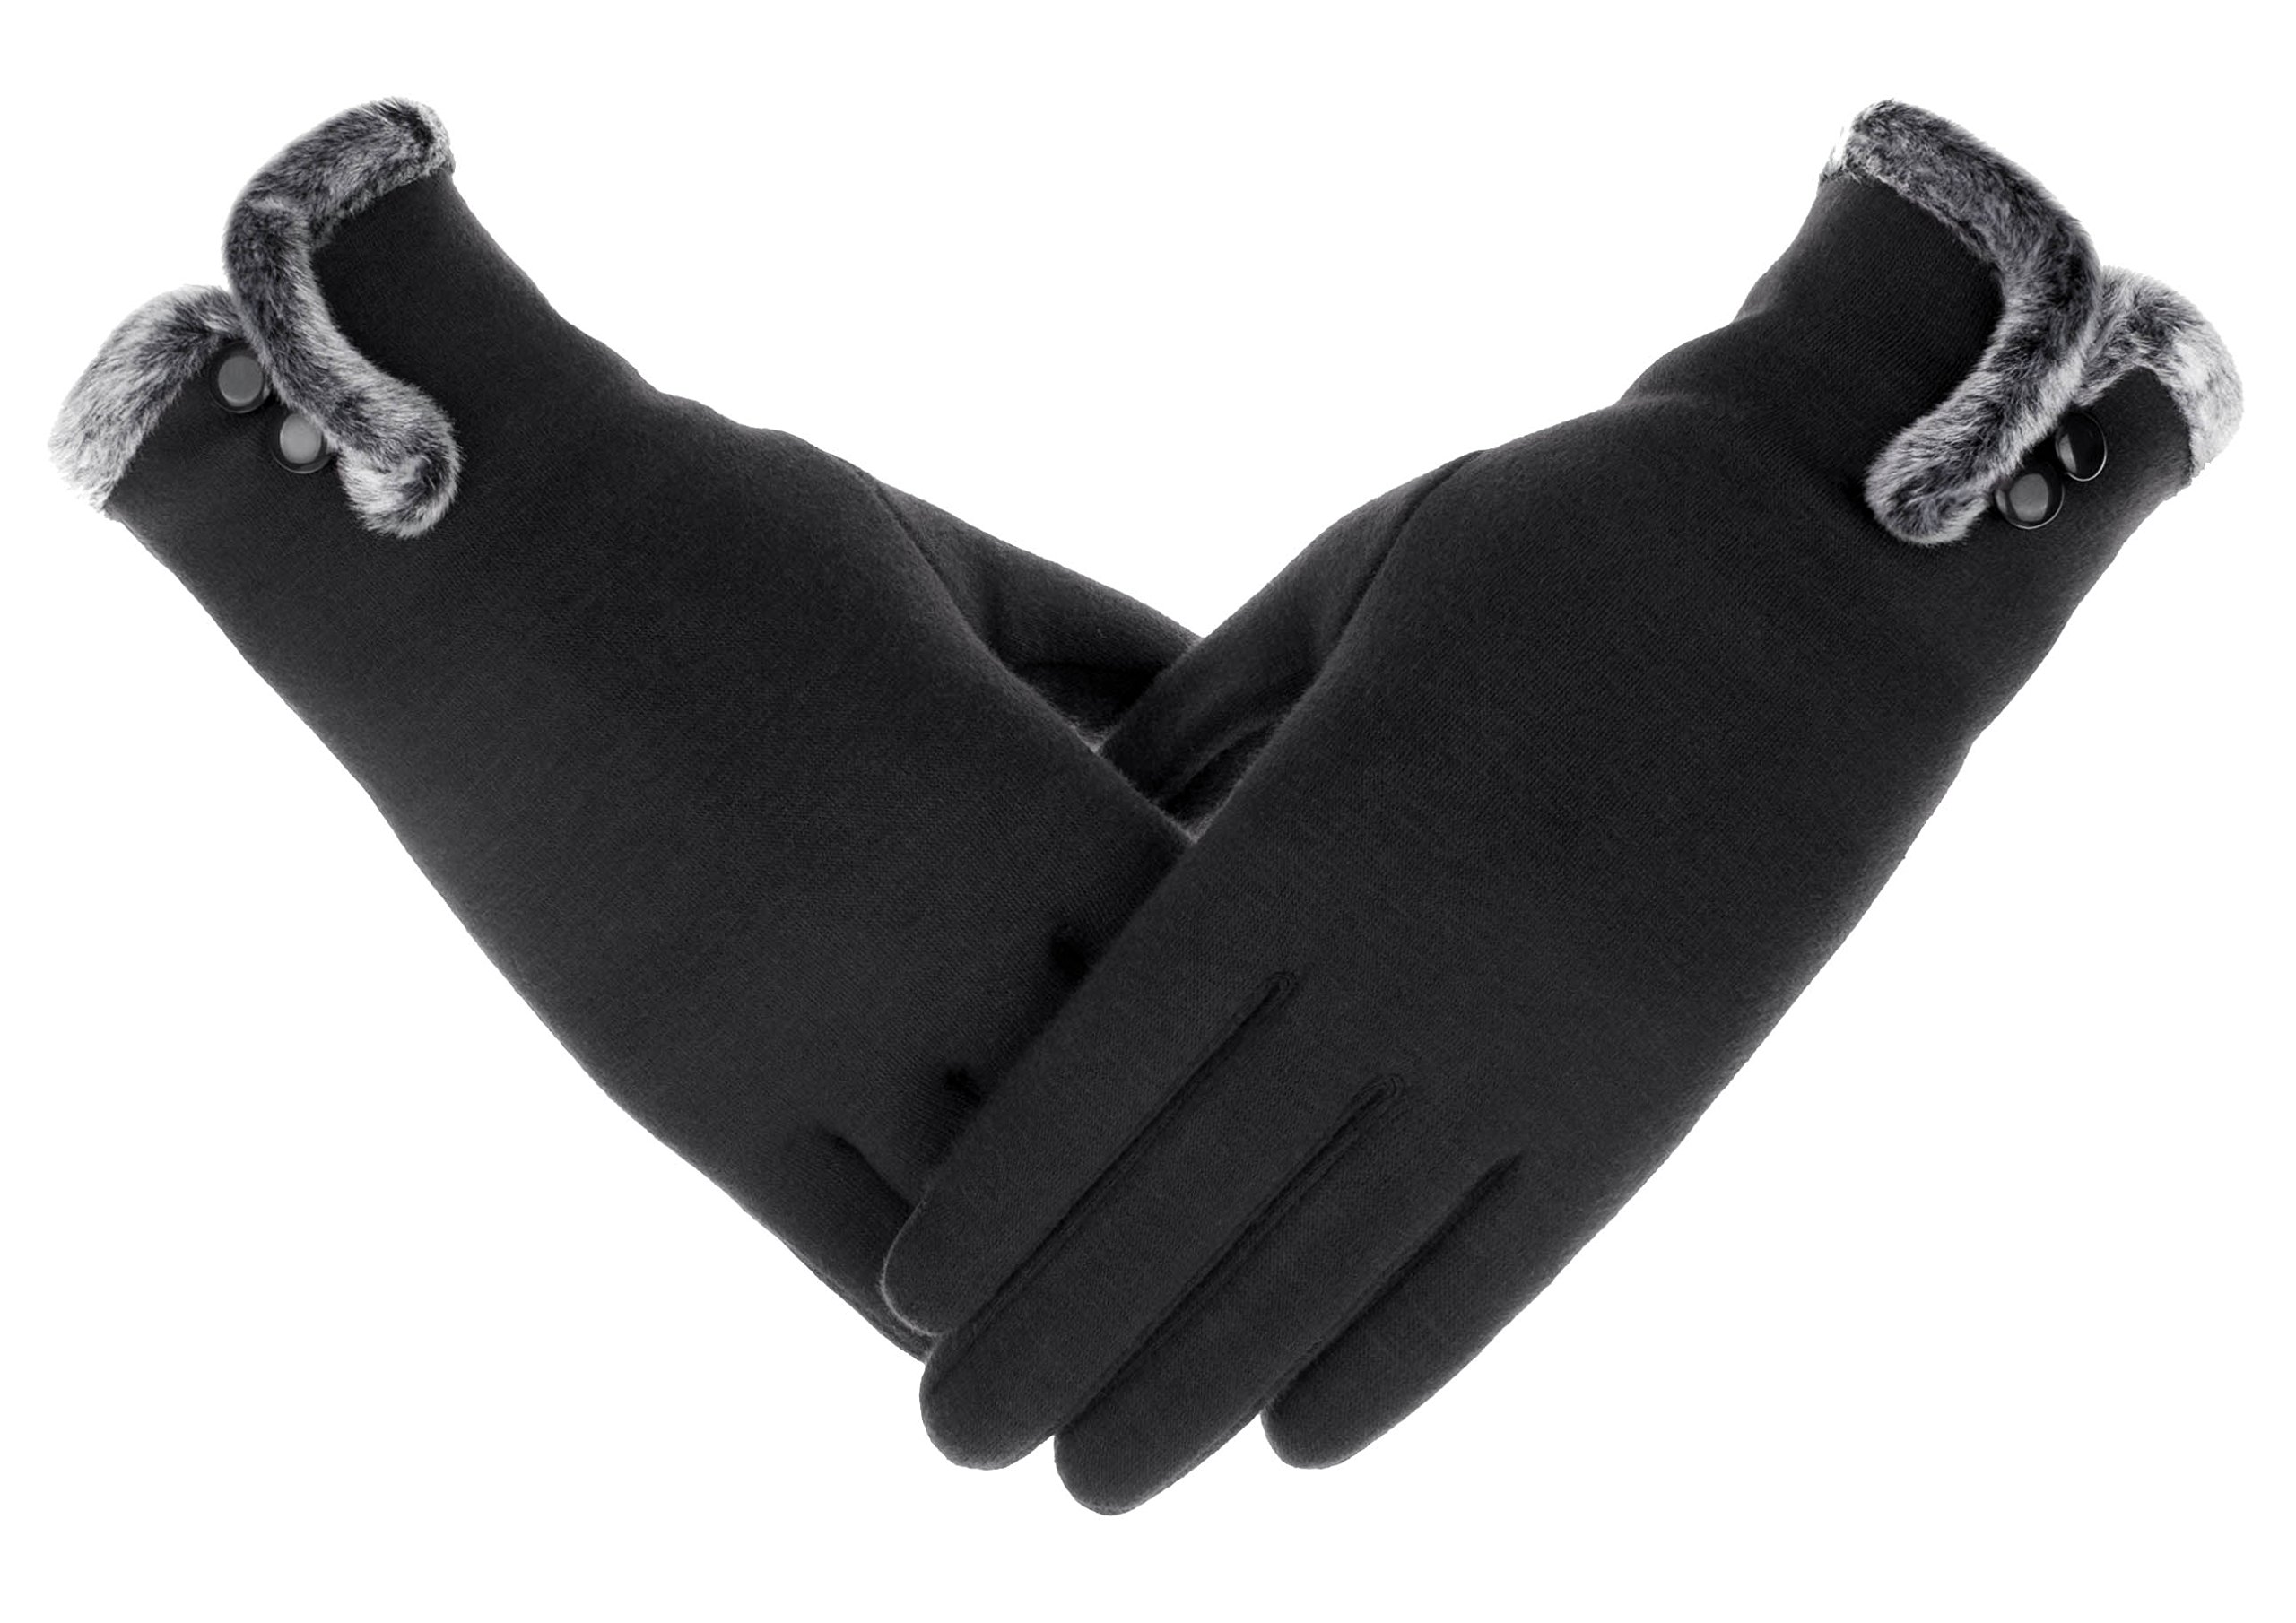 Knolee Women\'s NEW Fashion Touch Screen Warm Winter Thick Gloves With Button,Black